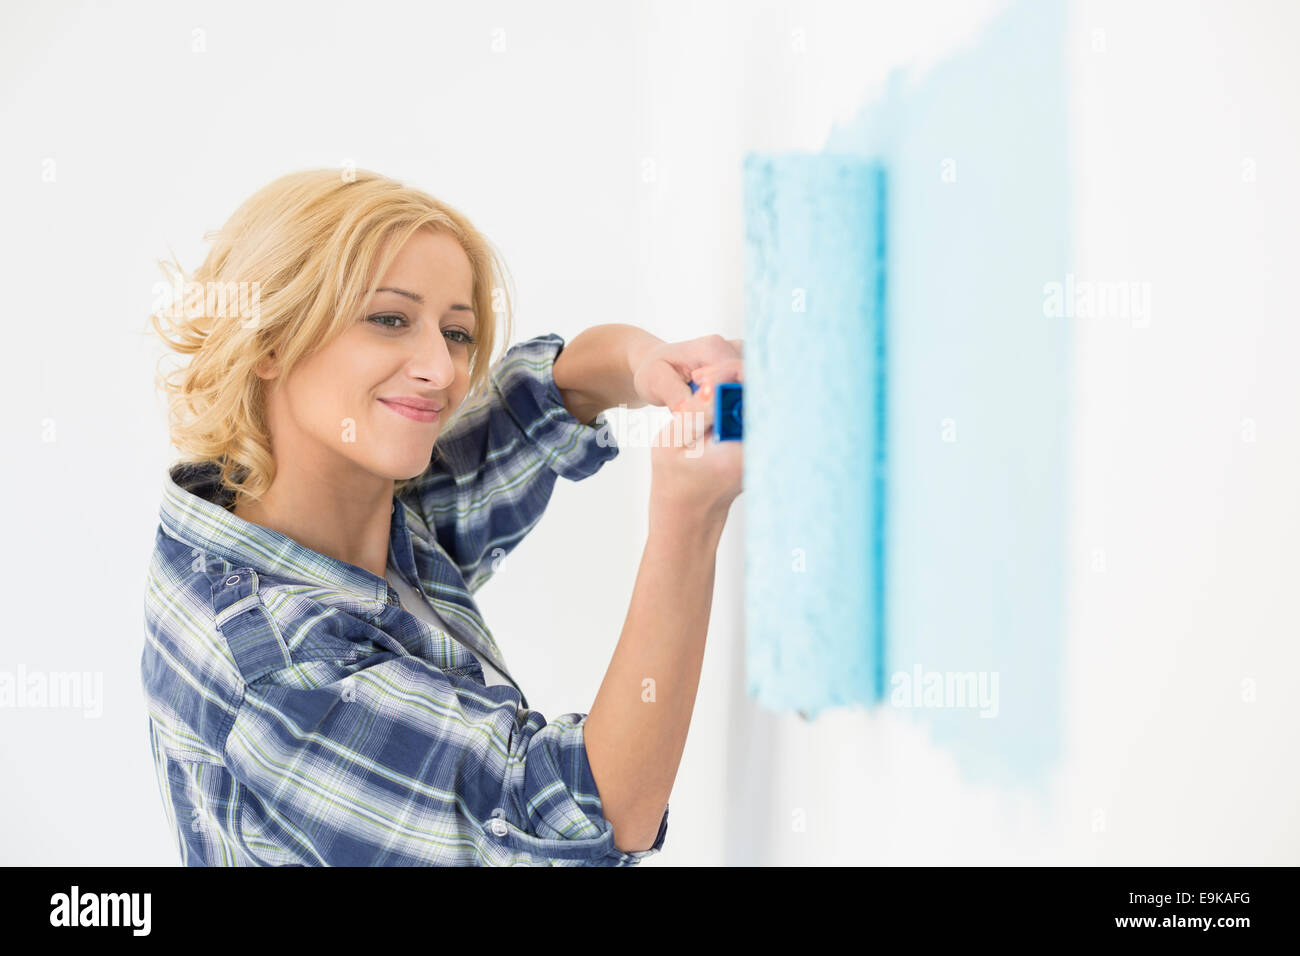 Beautiful woman painting wall with paint roller - Stock Image